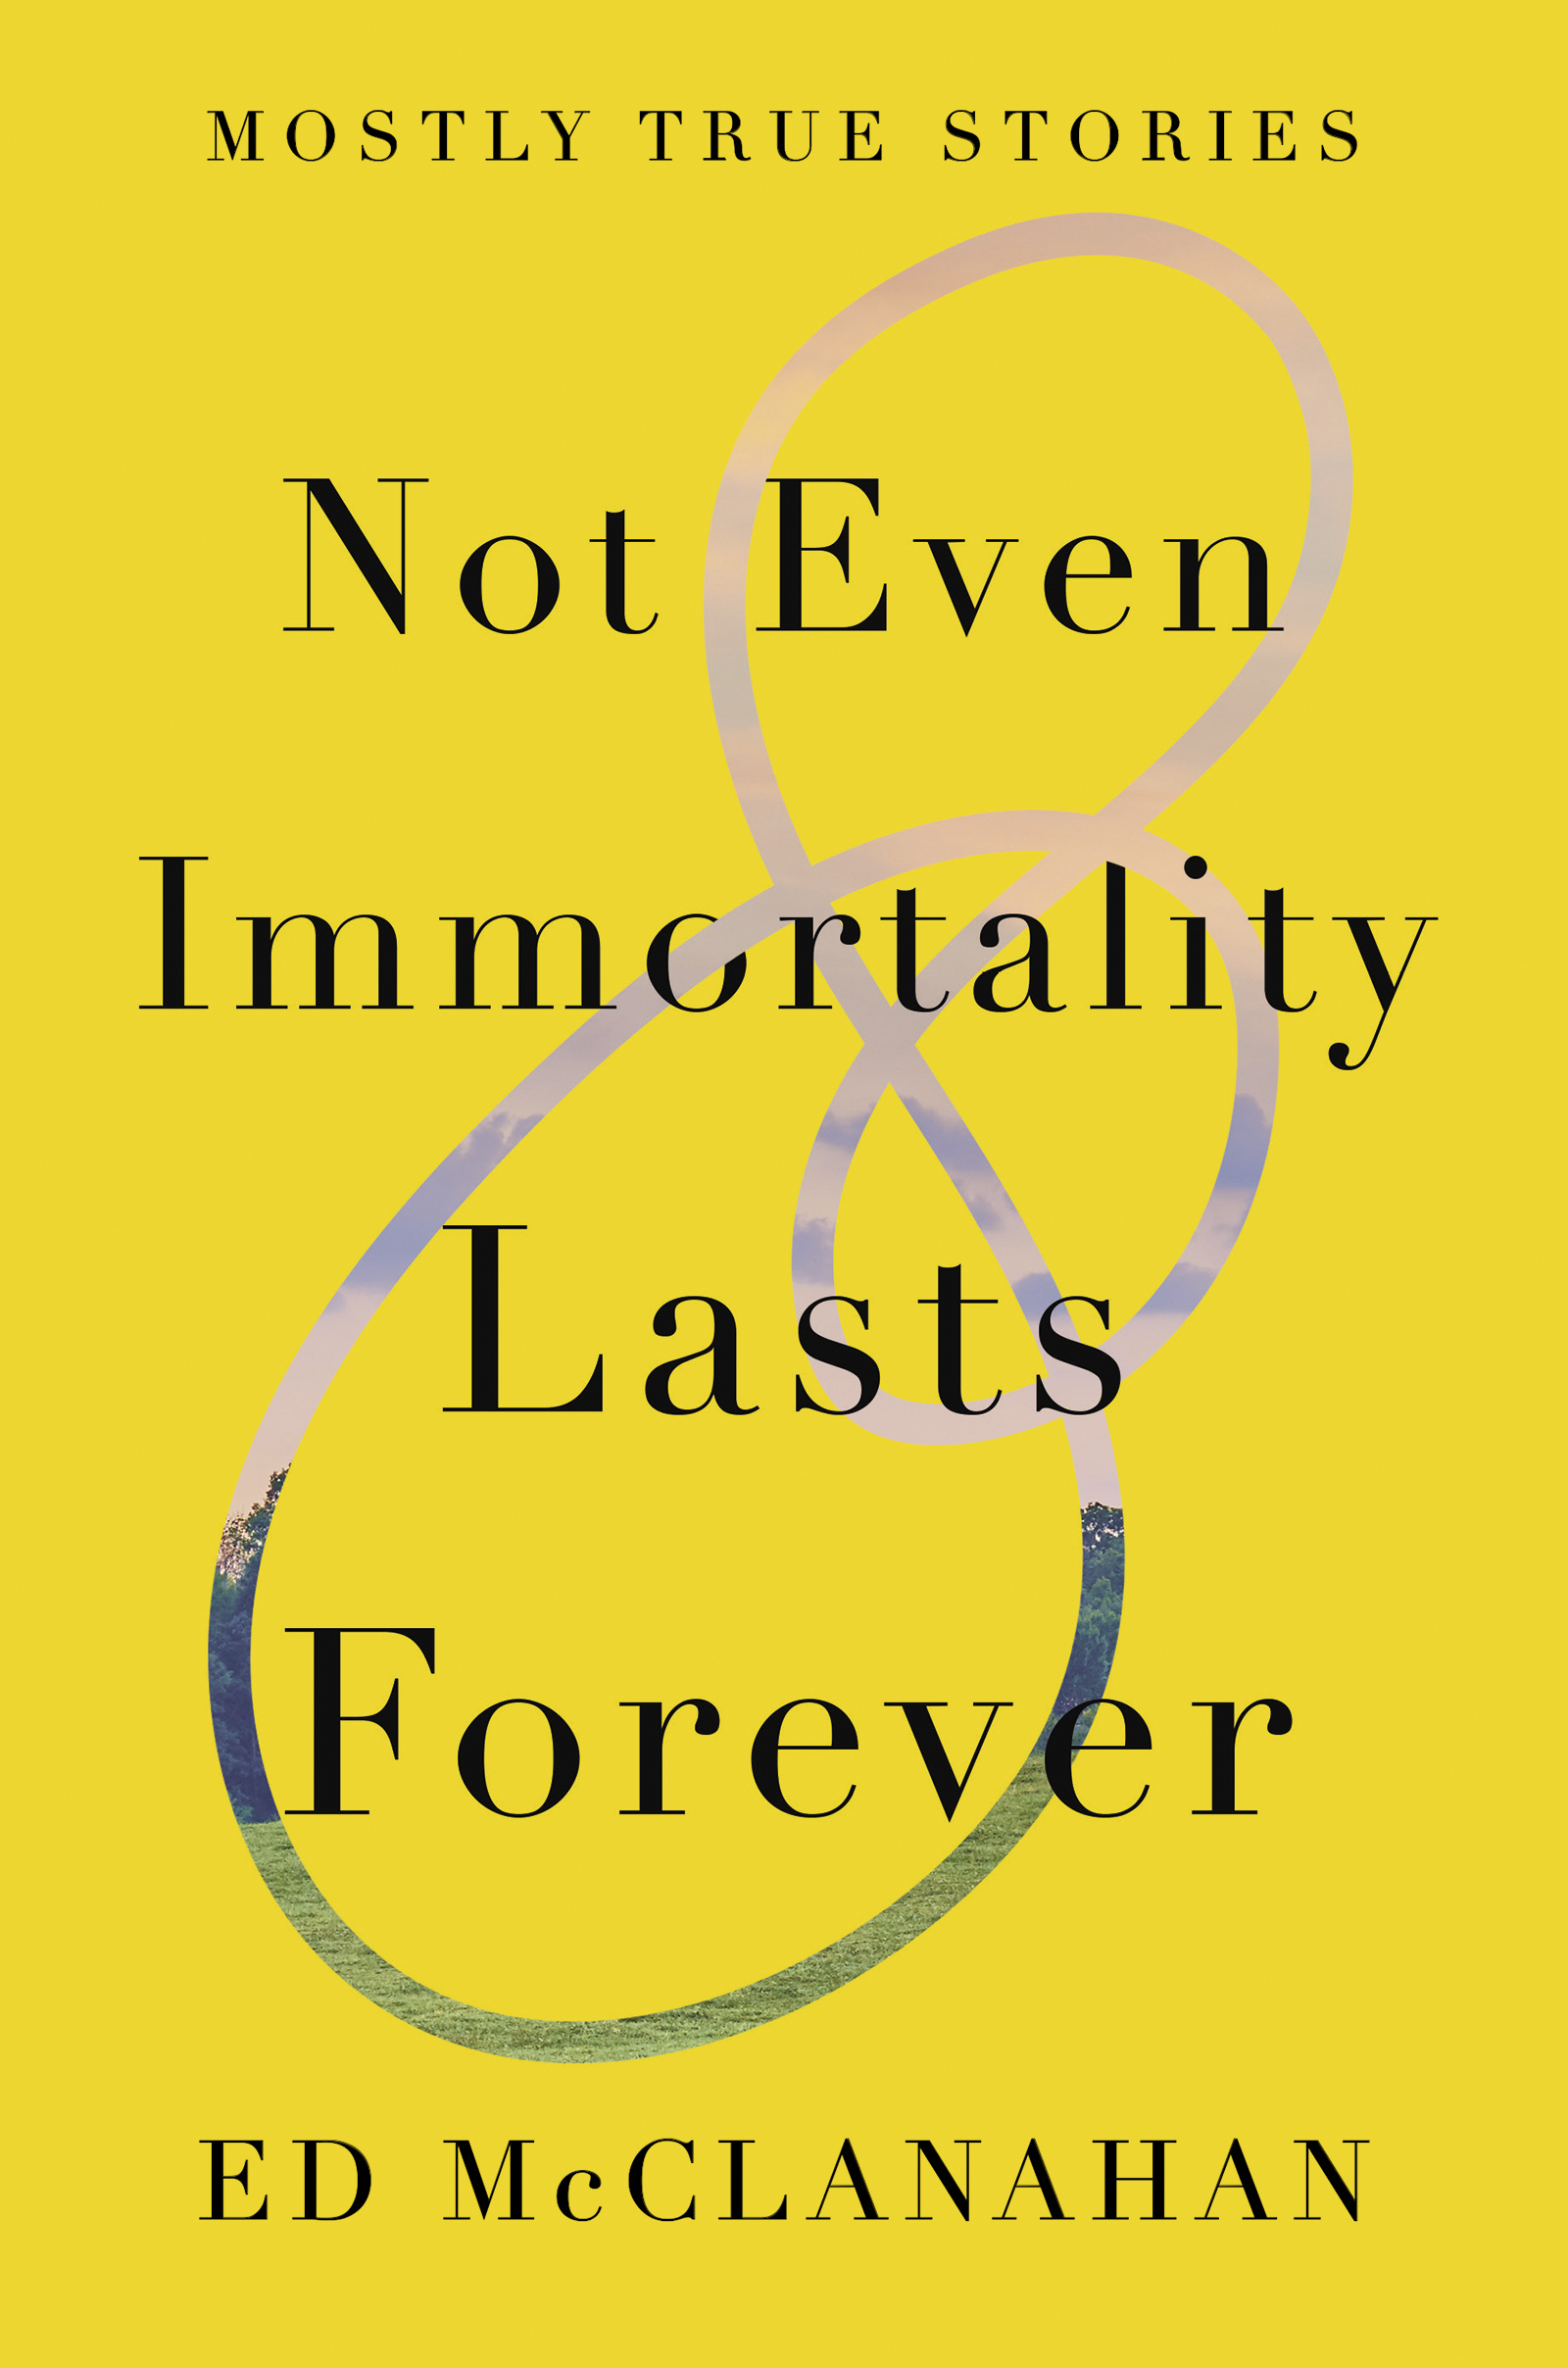 Not Even Immortality Lasts Forever